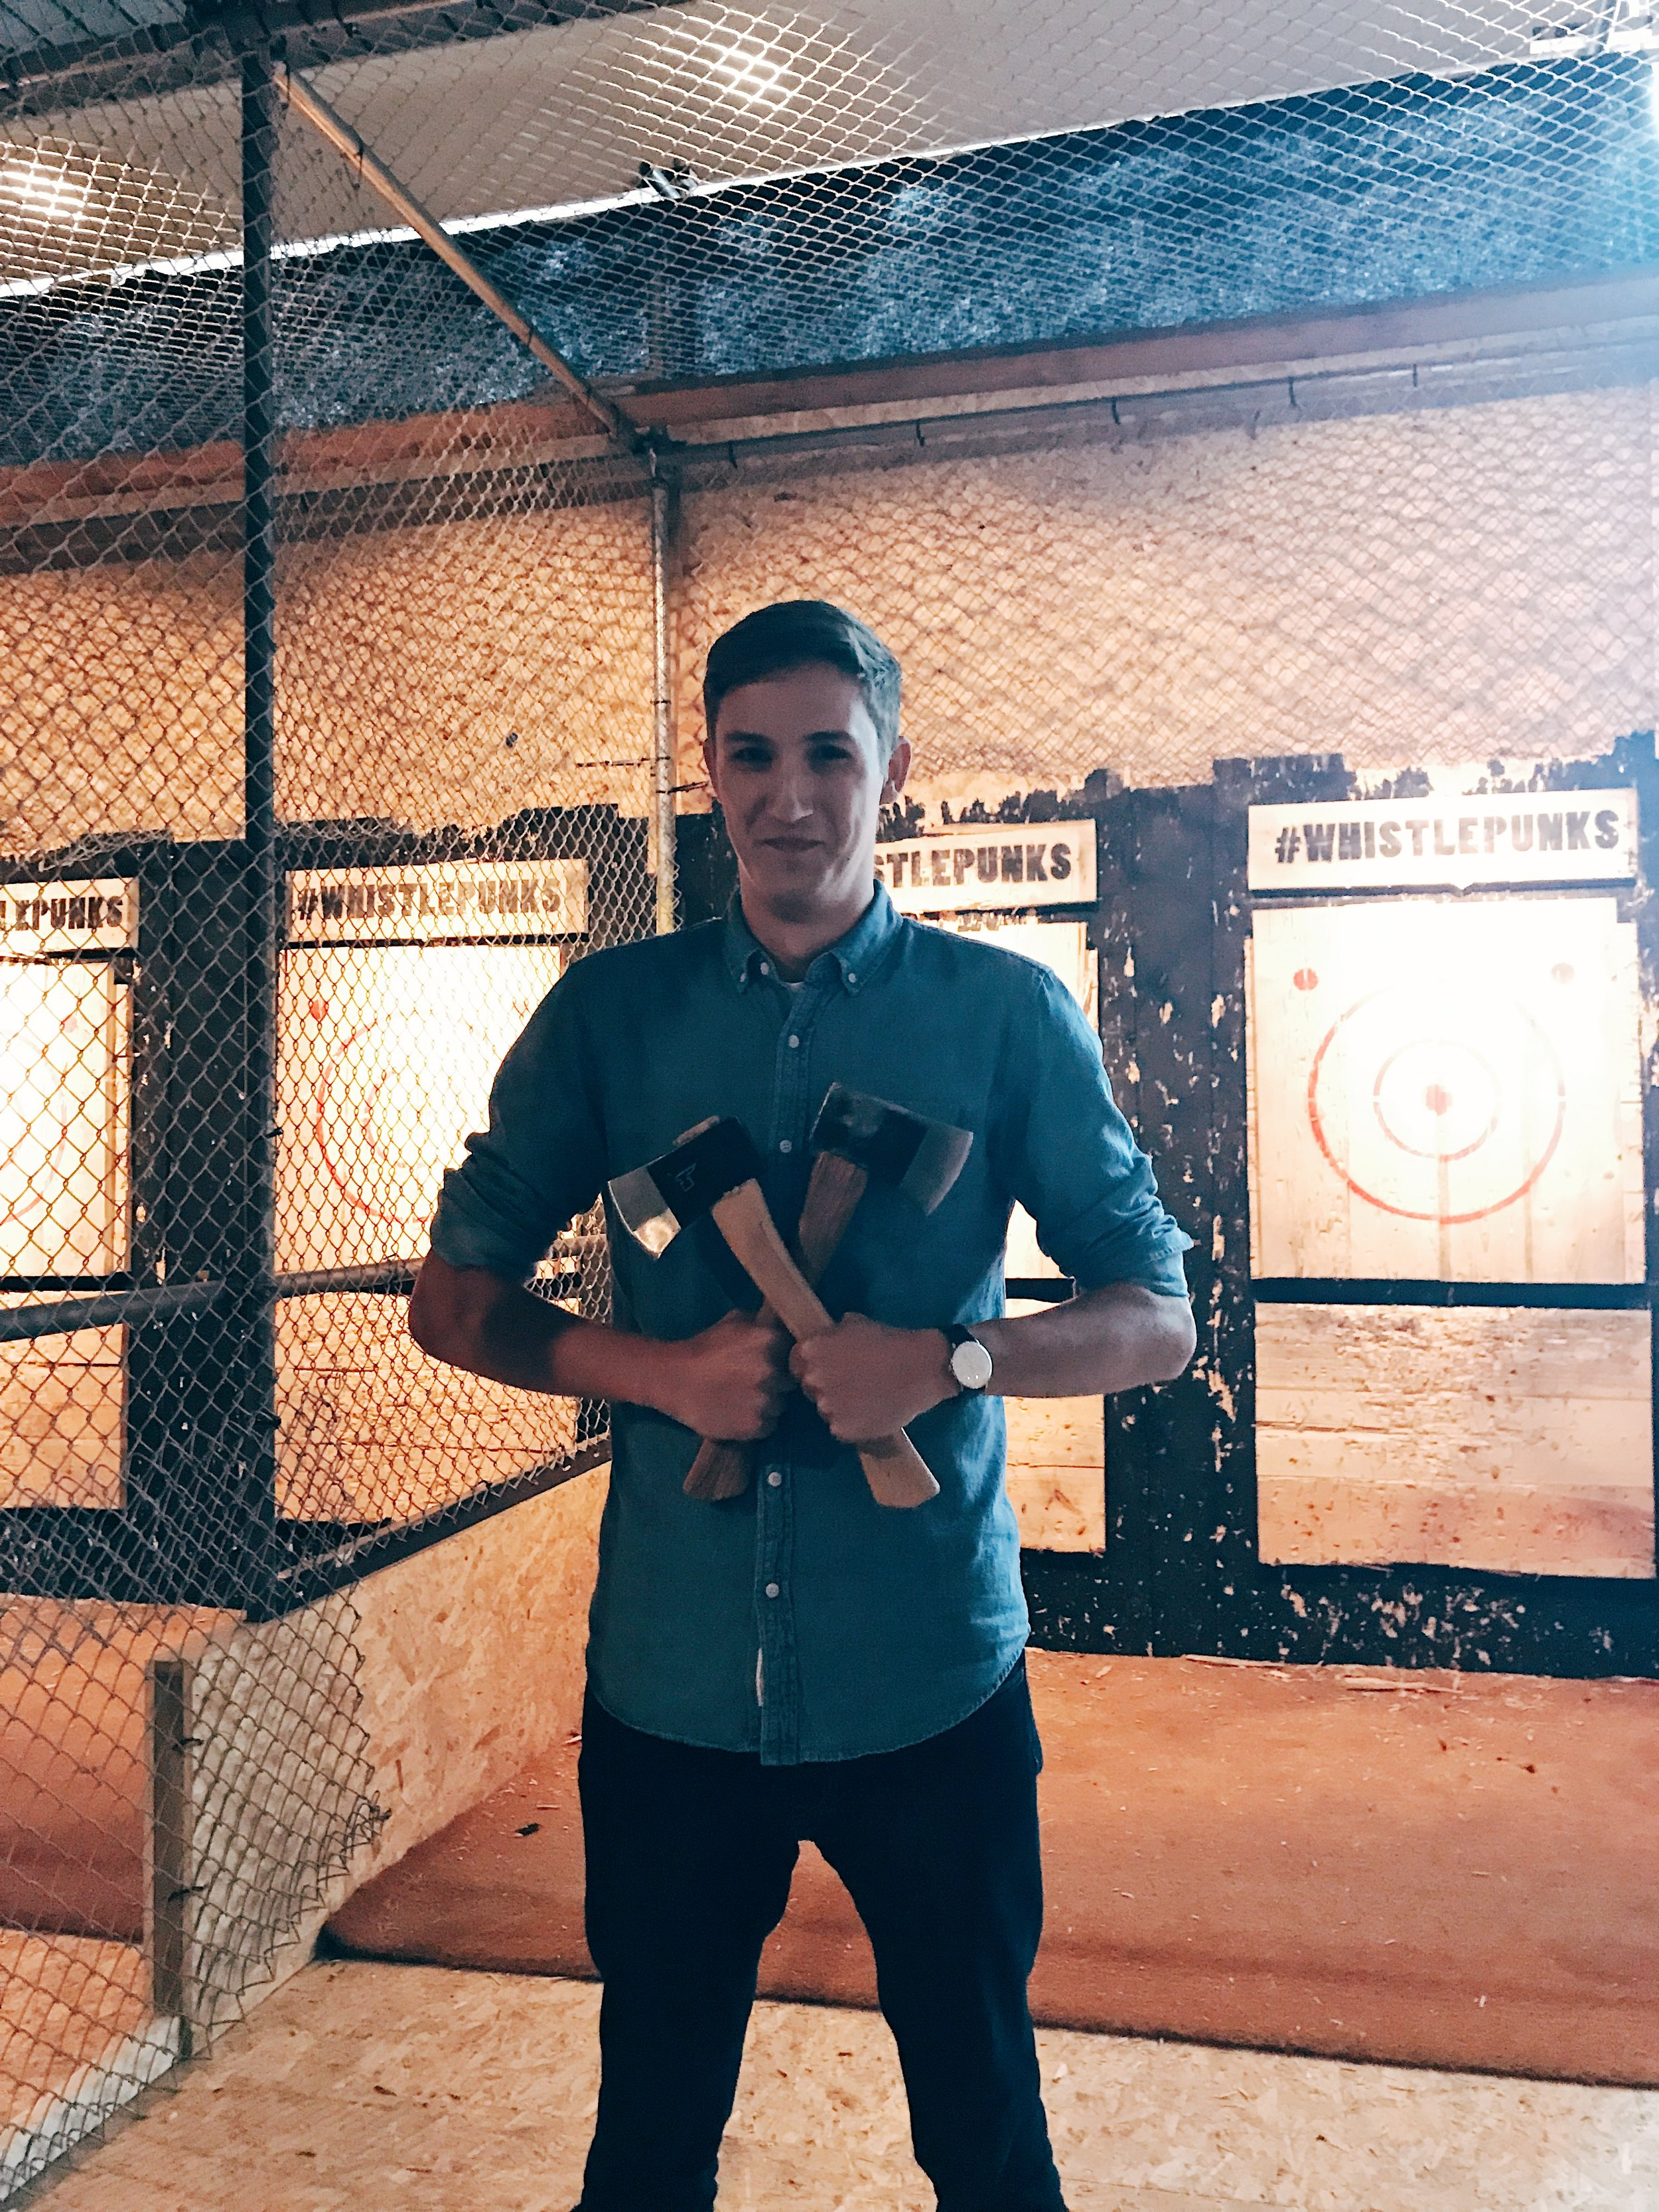 The Axe Throwing Champion